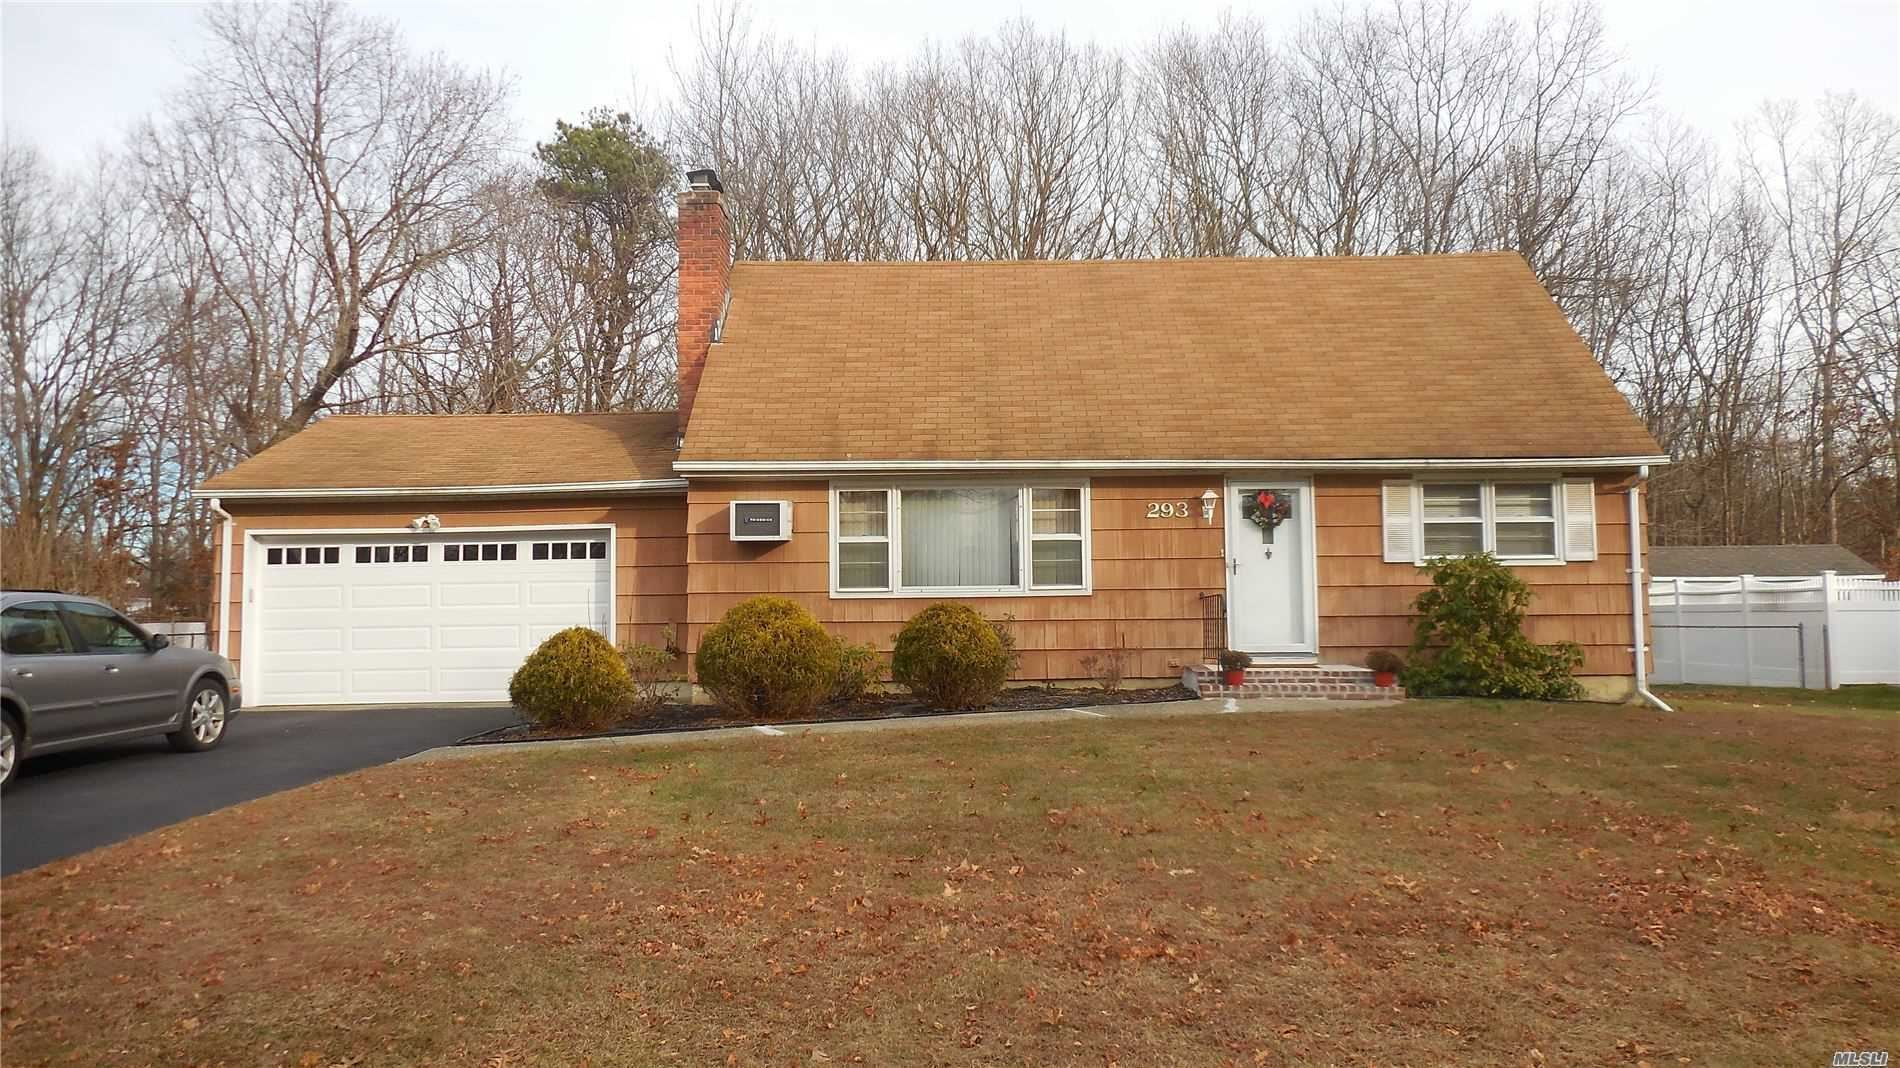 293 Tyler Avenue, Miller Place, NY 11764 - MLS#: 3190614